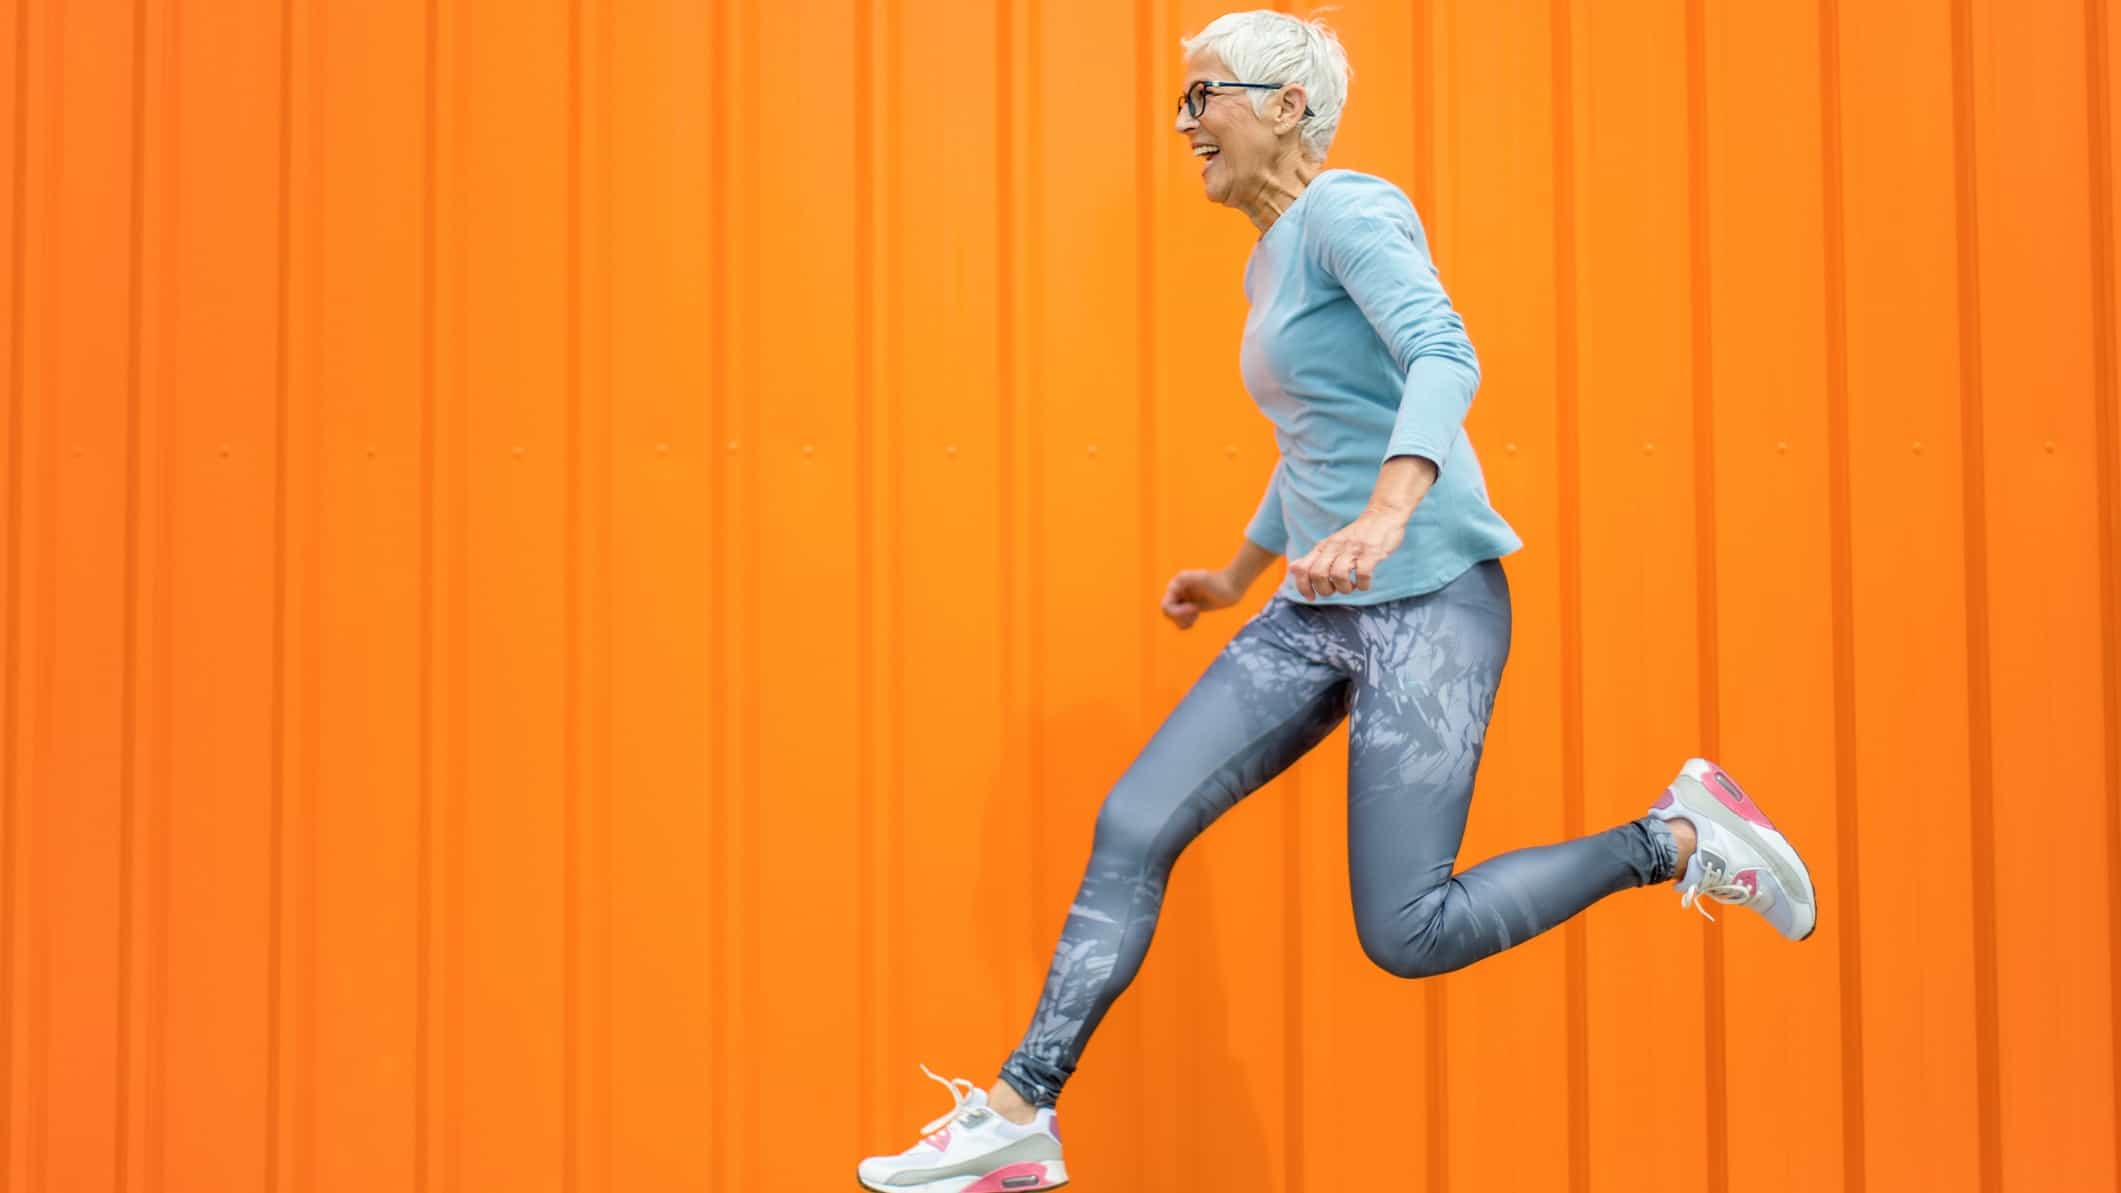 rising asx share price represented by senior lady jumping against orange background